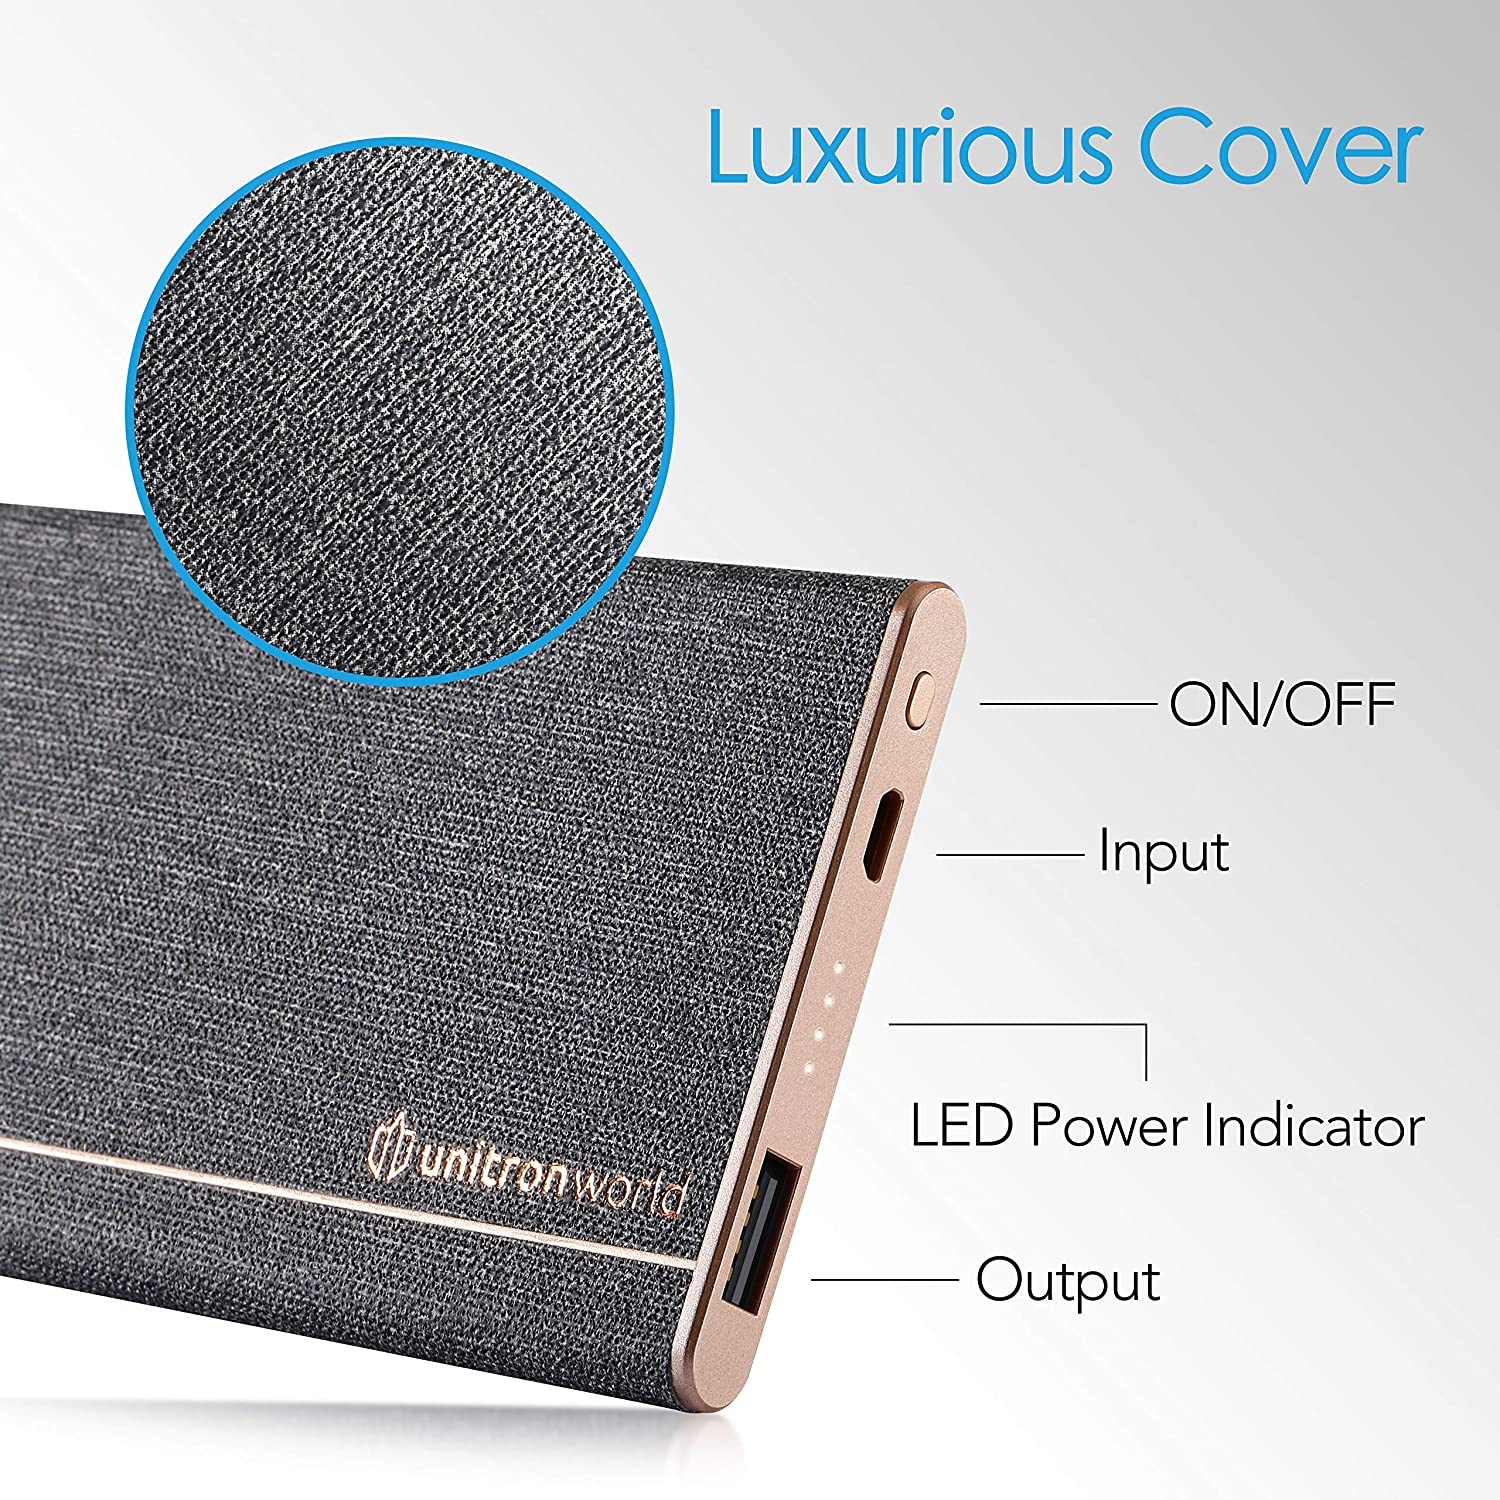 Unitron World Portable Charger Power Bank Ultra Slim Power Bank Portable Phone Charger External Battery Pack High Speed Compatible with iPhone 11 Pro XS X Max 8 6 iPad Android Pixel Samsung   5000mAh